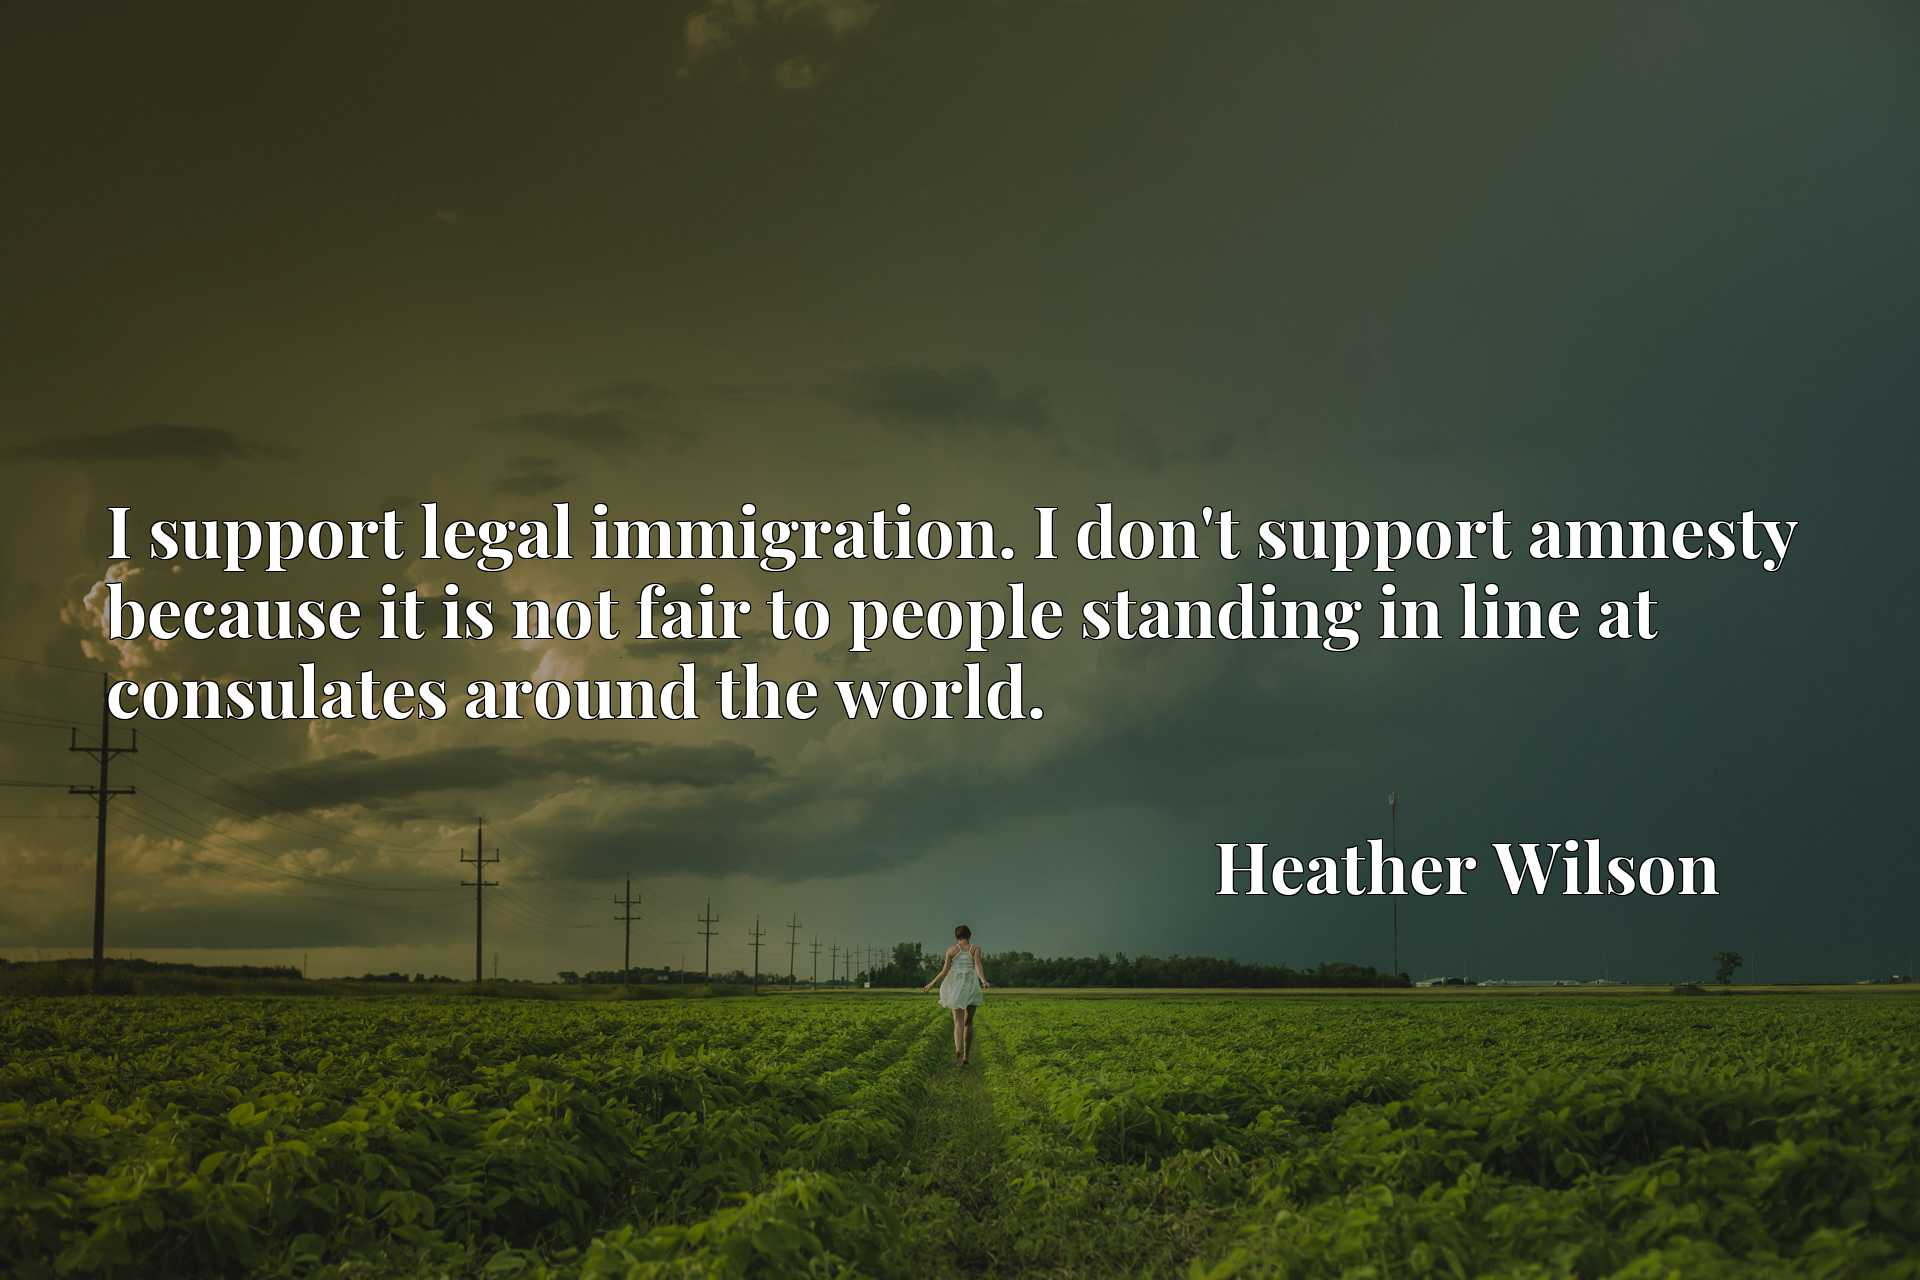 I support legal immigration. I don't support amnesty because it is not fair to people standing in line at consulates around the world.